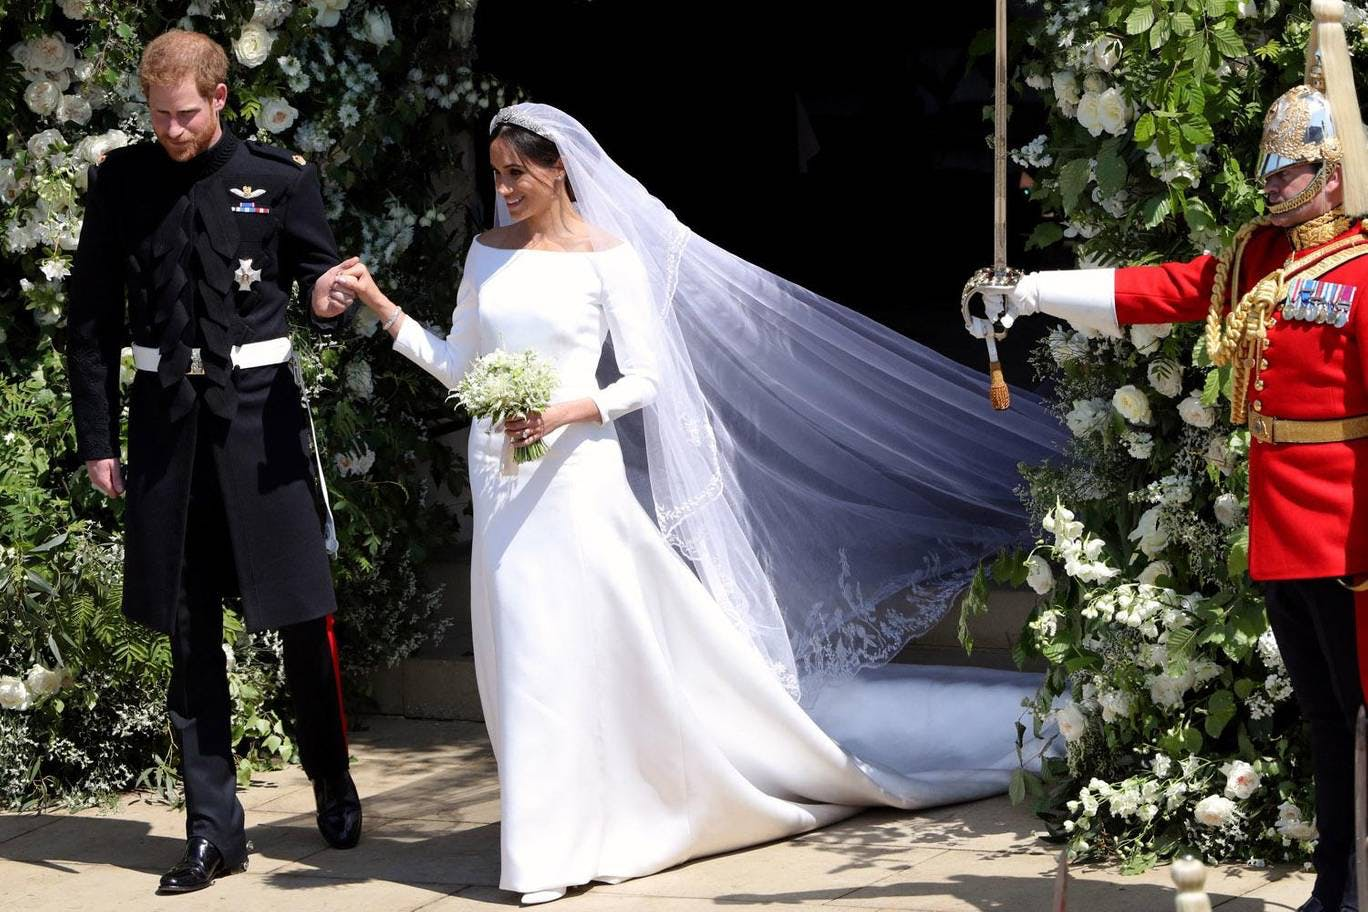 Best dressed at the Royal Wedding of Prince Harry & Meghan Markle